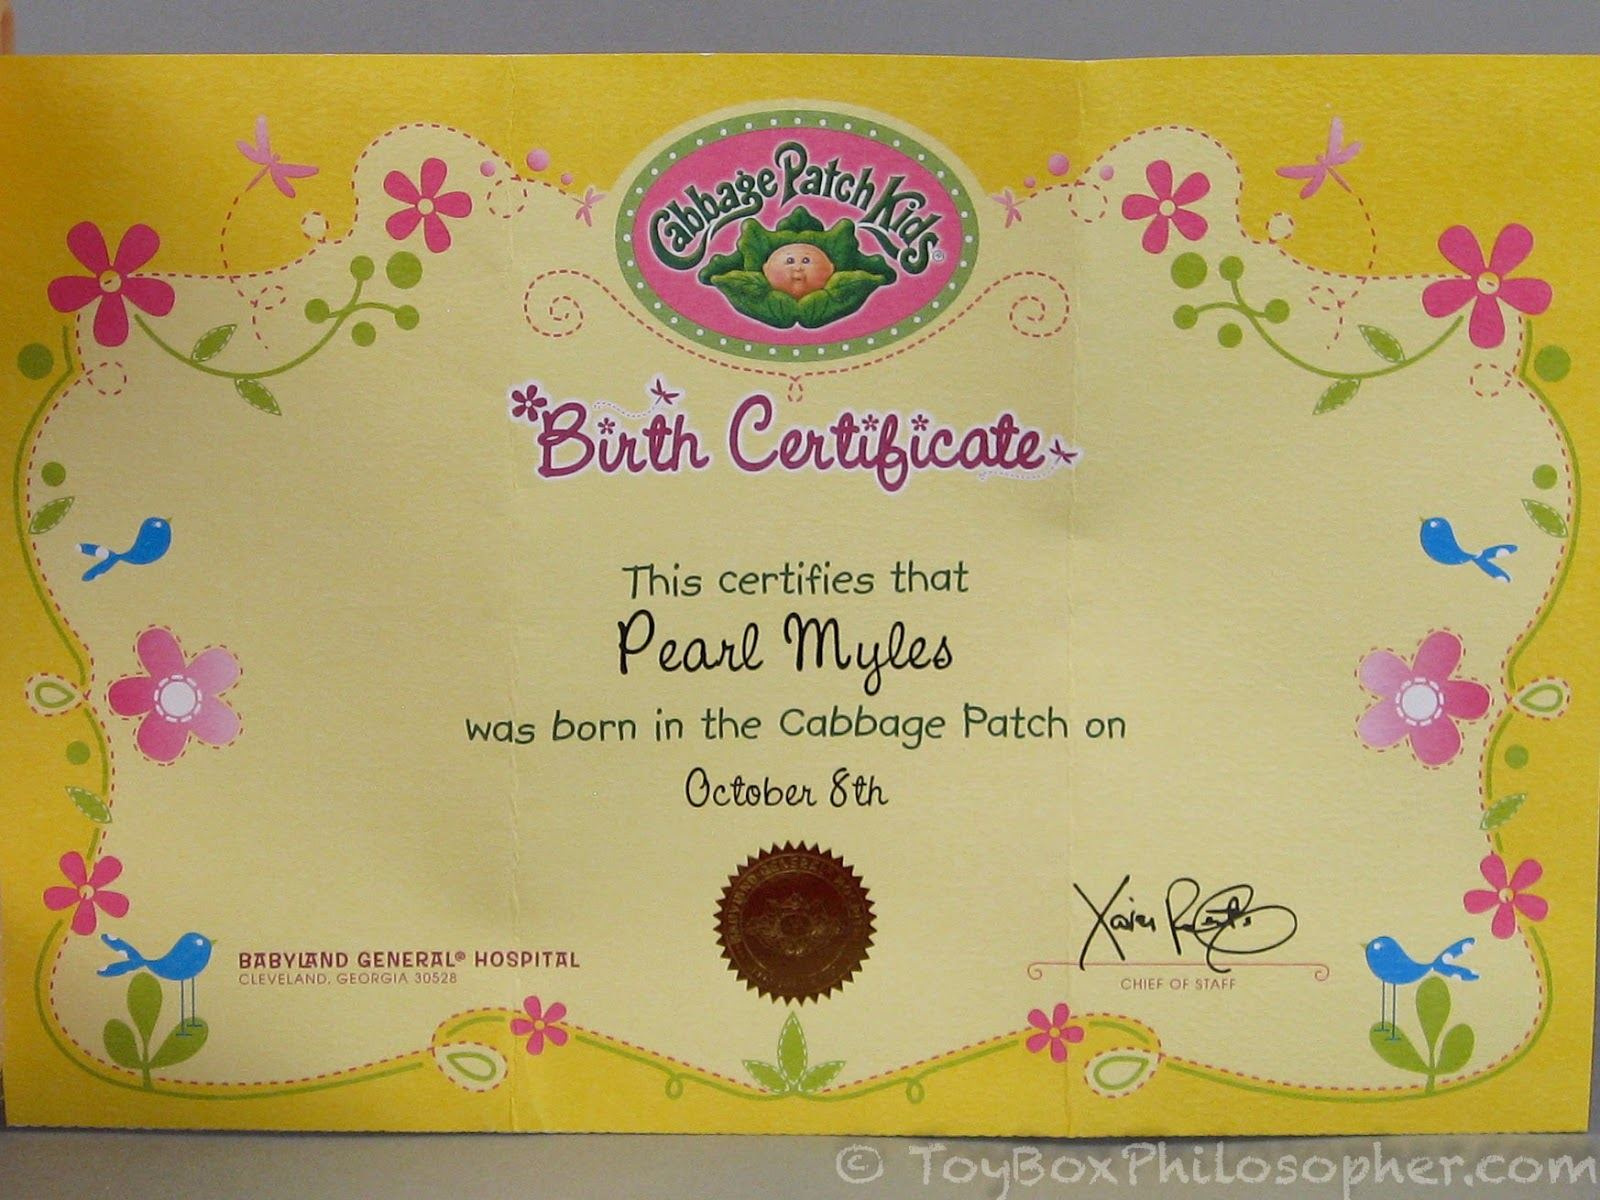 Sunday surprise cabbage patch kids surprise newborn twins for Cabbage patch adoption certificate template